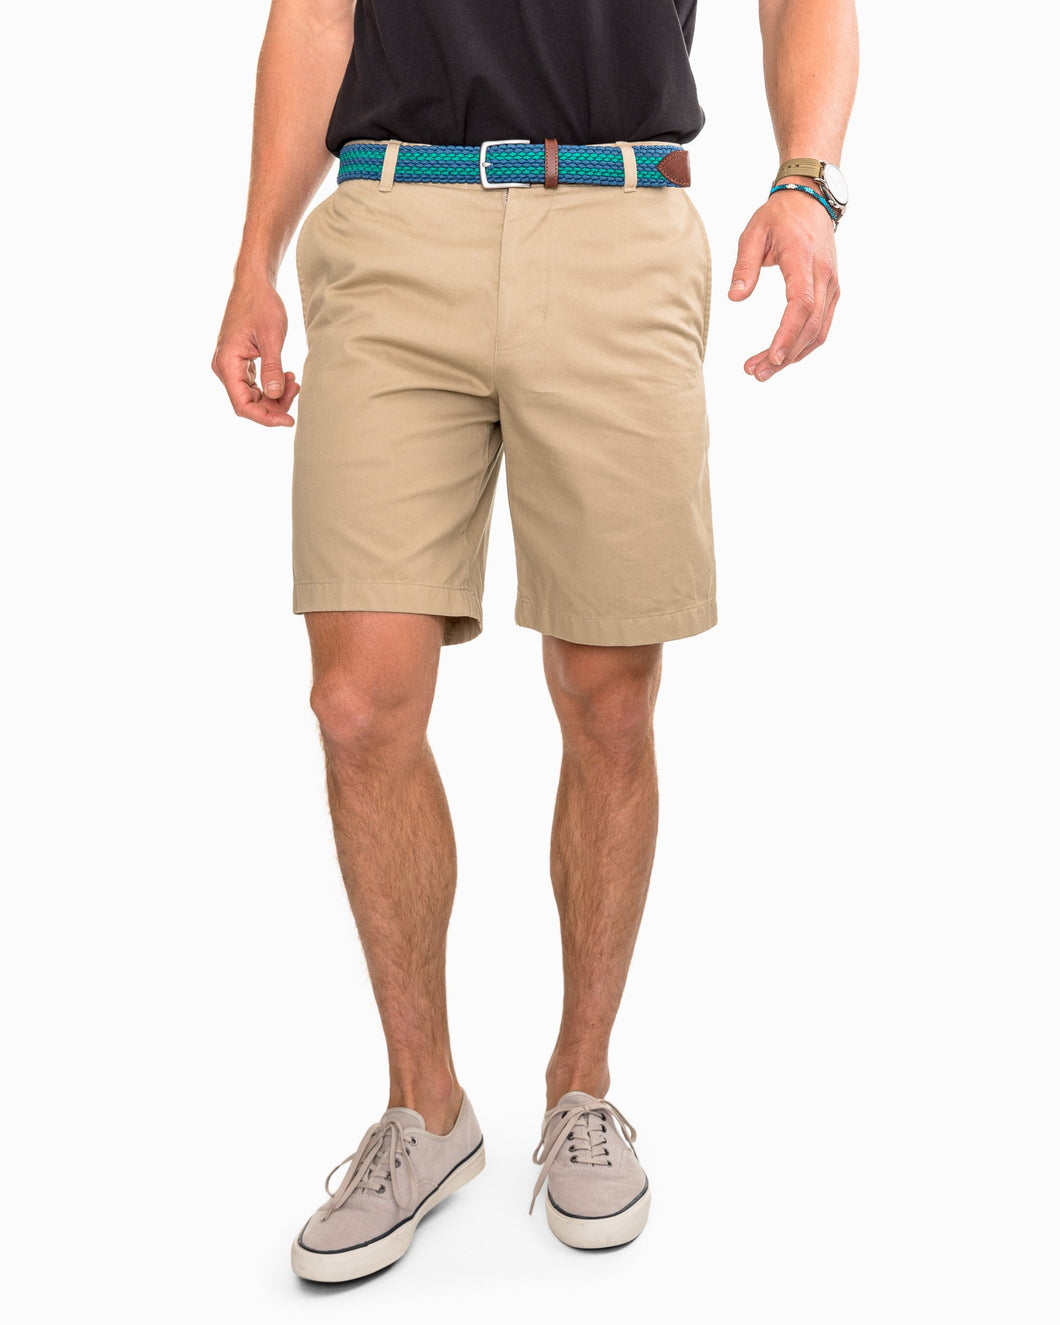 Our best Khaki Short